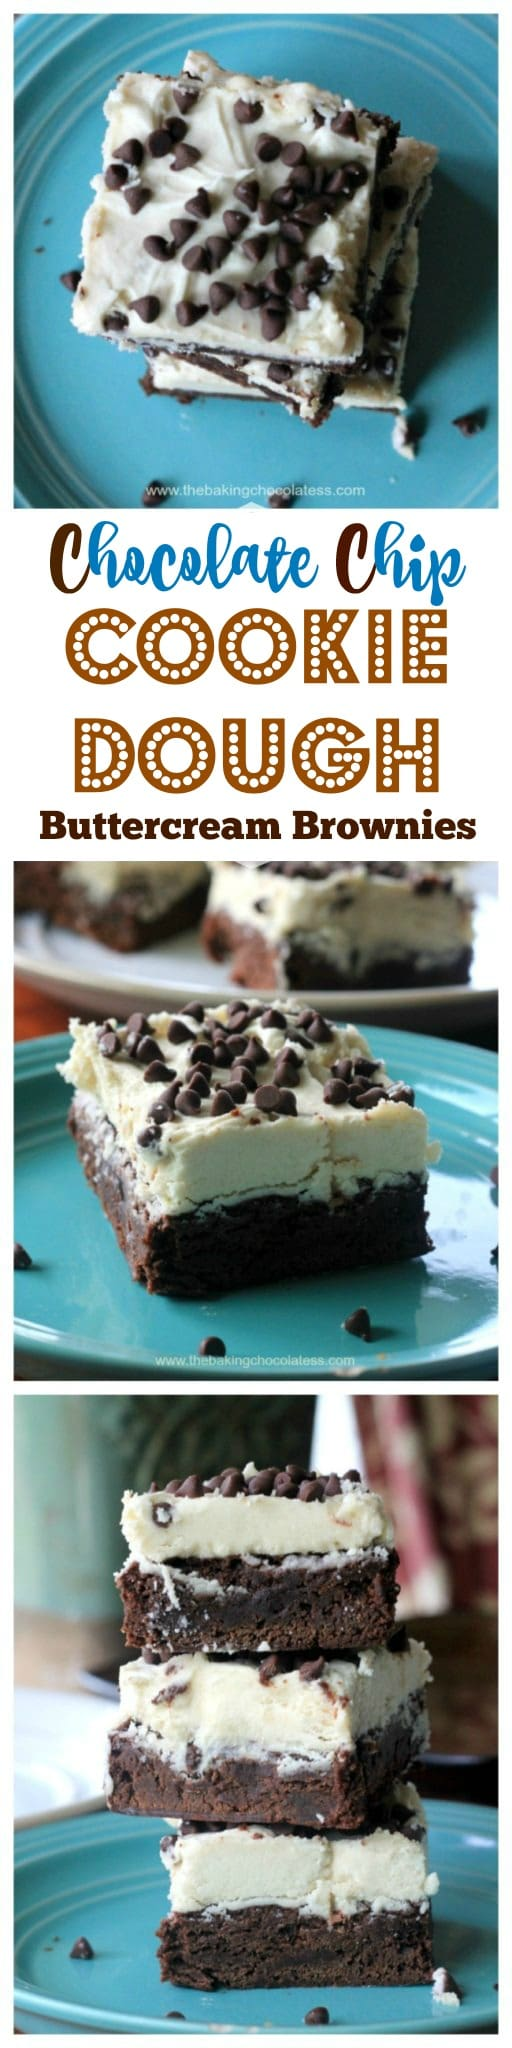 Cookie Dough Buttercream Frosted Brownies